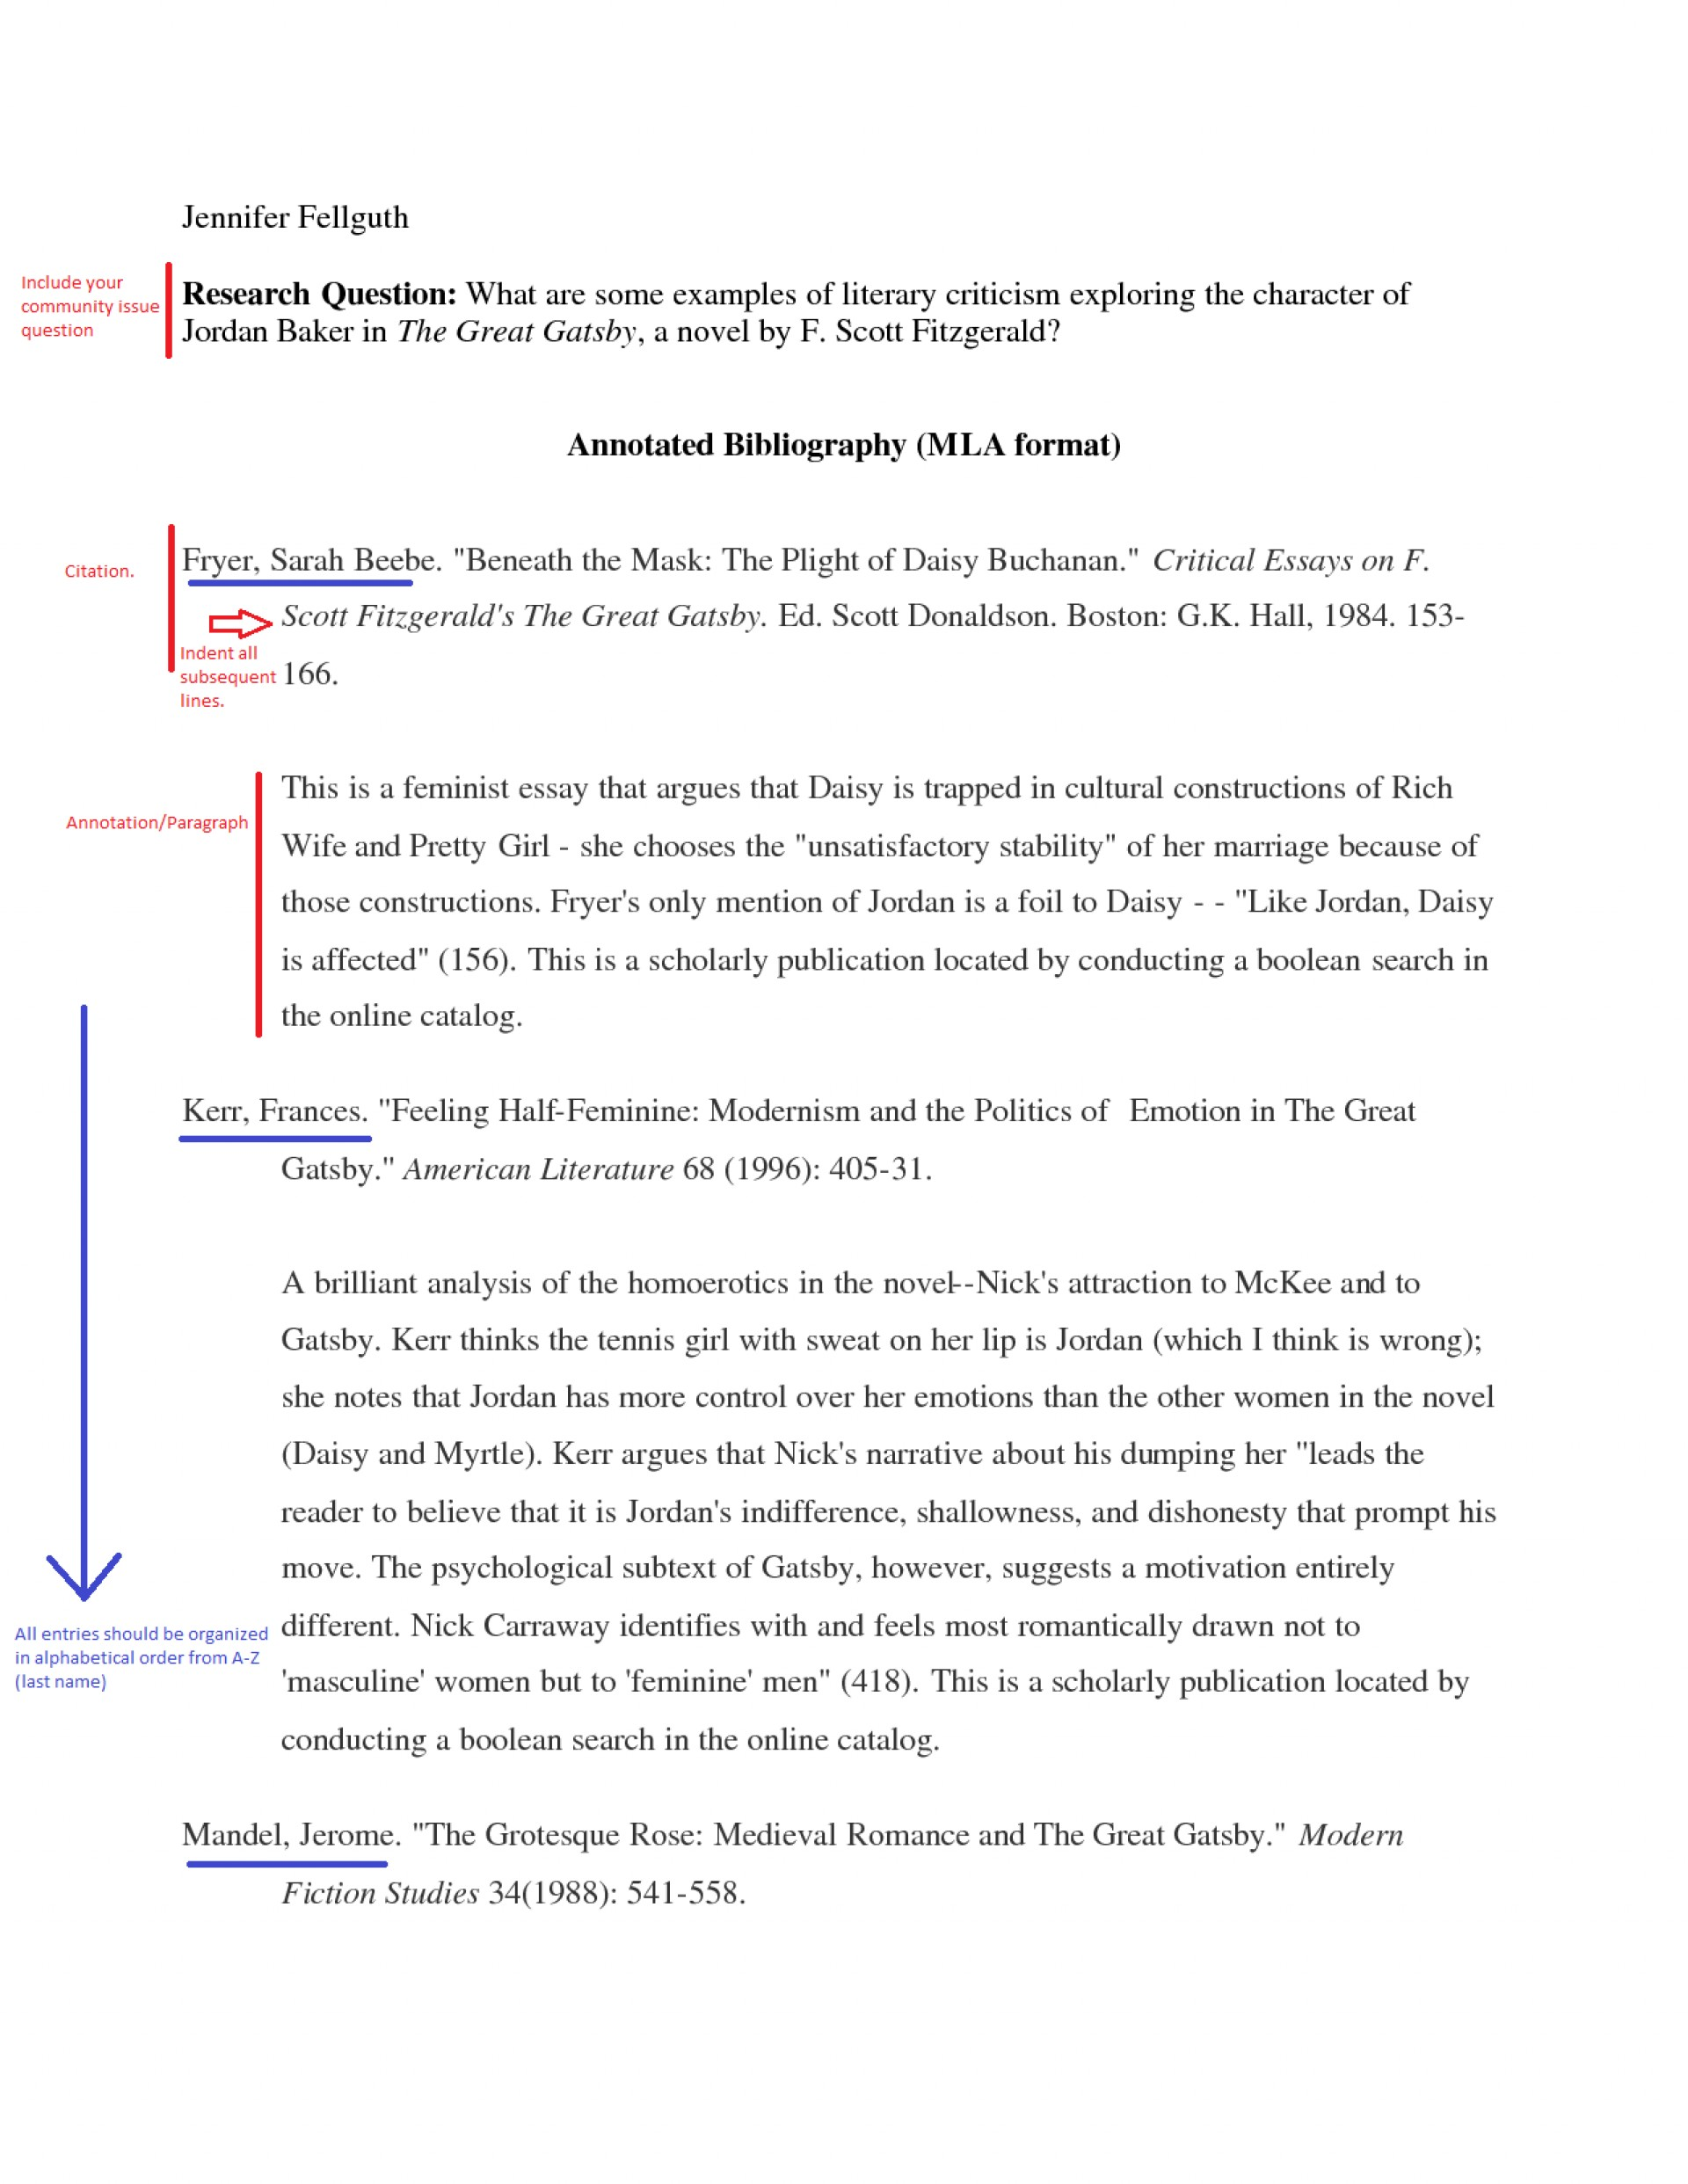 020 Mla Citation For Essay How To Cite Images In Format Did You Know Example Papernotatedbibsampleanno Parenthetical Citing Archaicawful An A Book 8th Edition Work Within Apa 1920